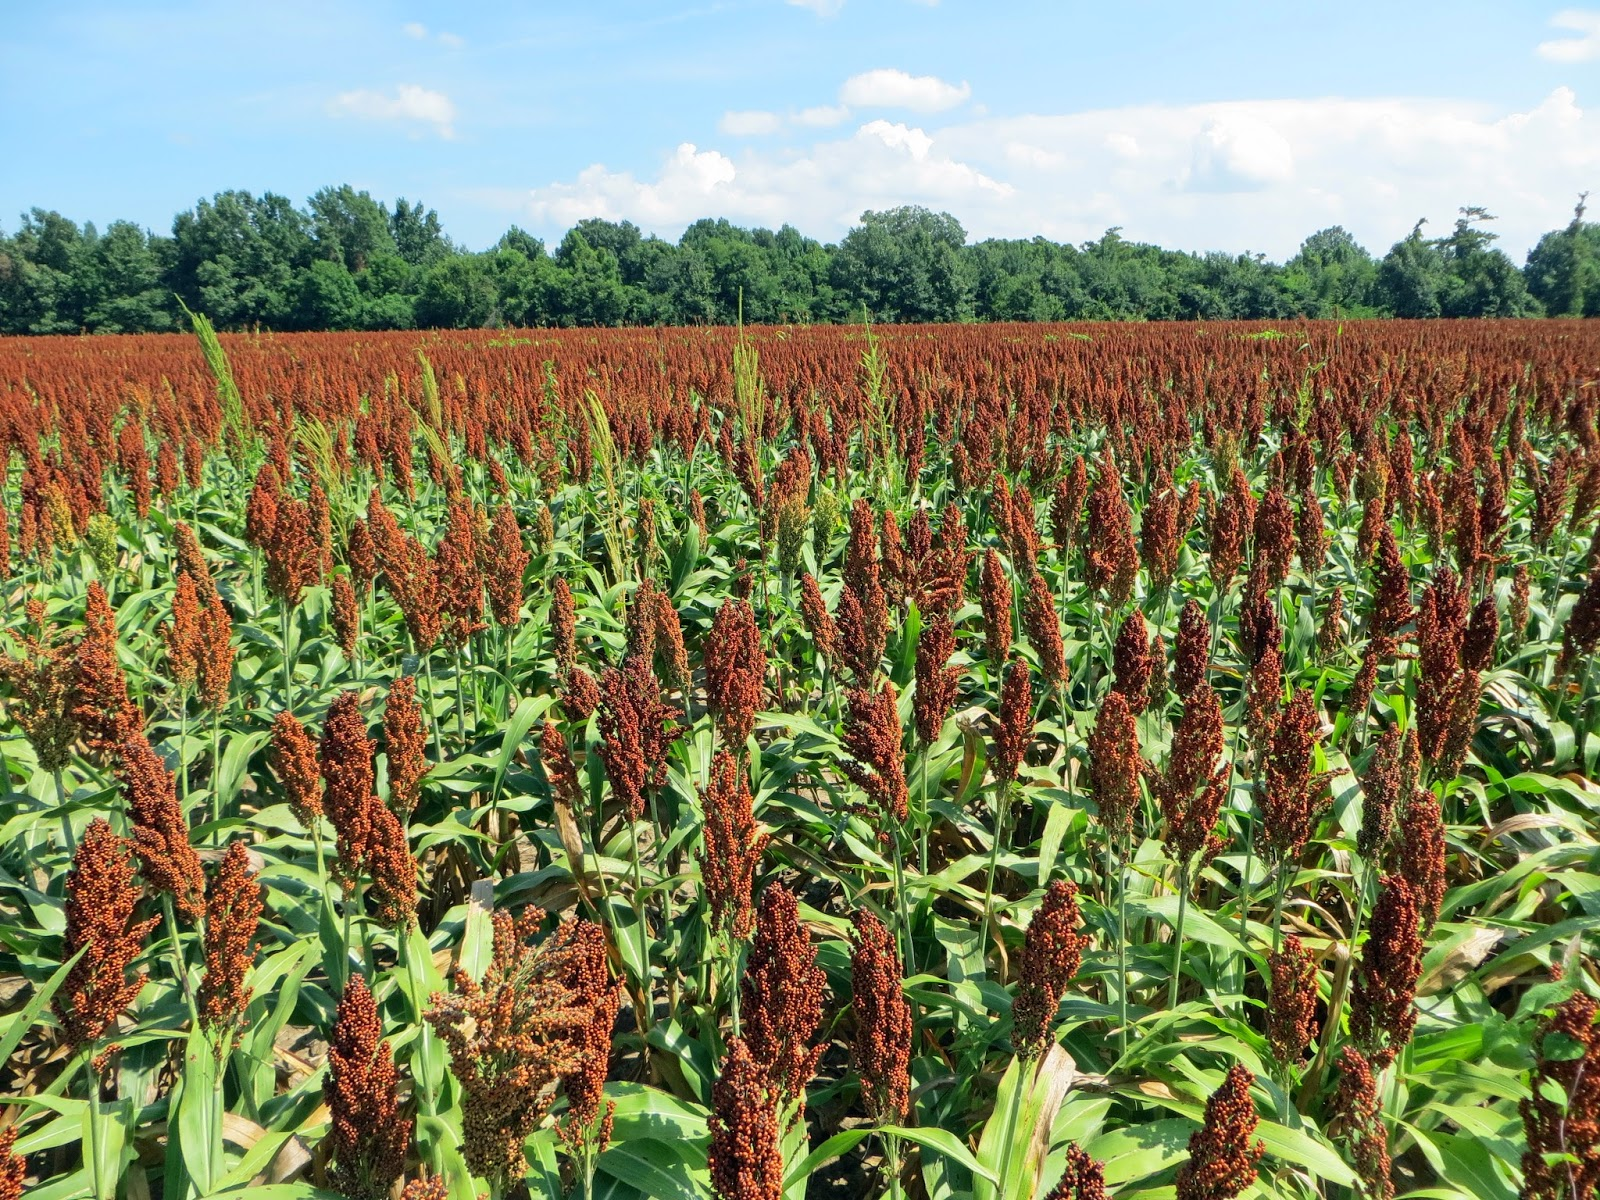 The Daily Rant: I See A Molasses Sorghum Cookie In My Future